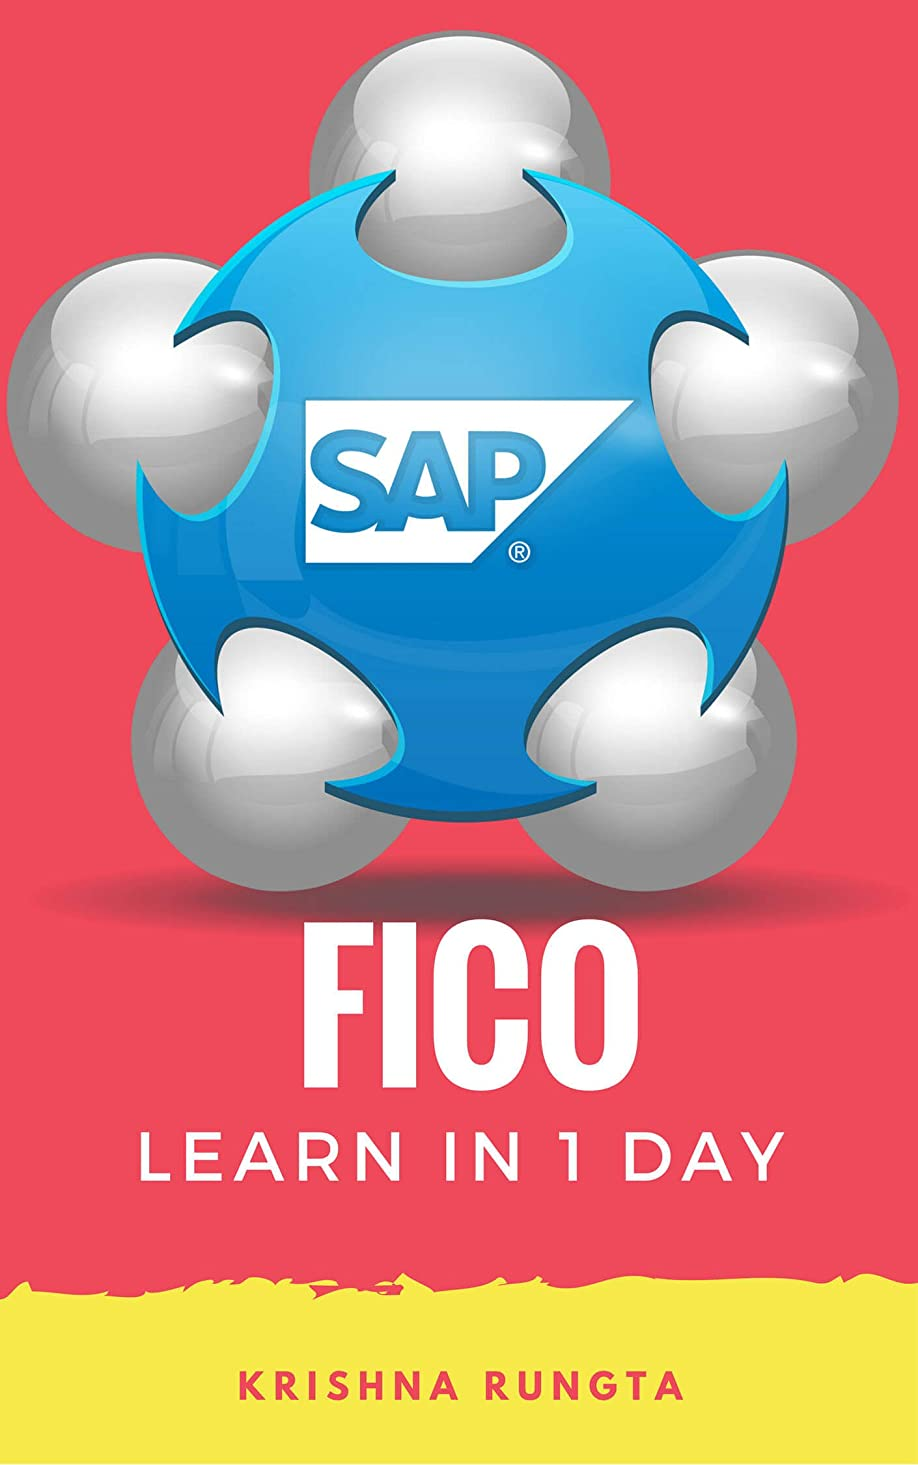 絶滅関与するしたいLearn SAP FICO in 1 Day: Definitive Guide to Learn SAP FICO ERP (English Edition)